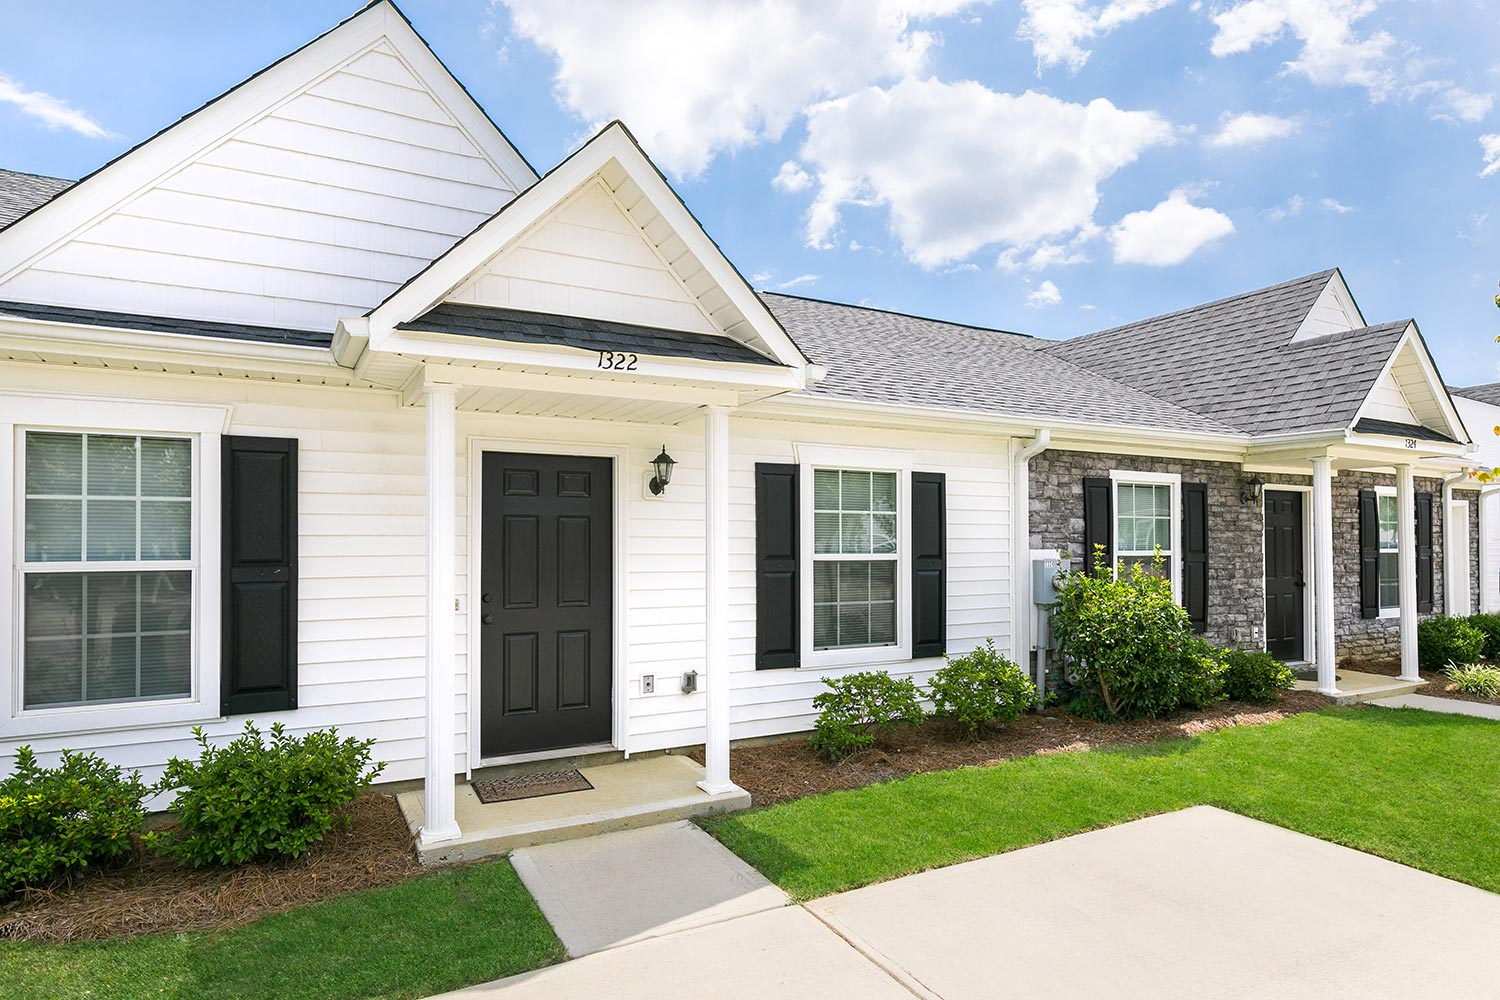 Marvelous Highborne Apartments And Townhomes In Augusta Georgia Download Free Architecture Designs Intelgarnamadebymaigaardcom